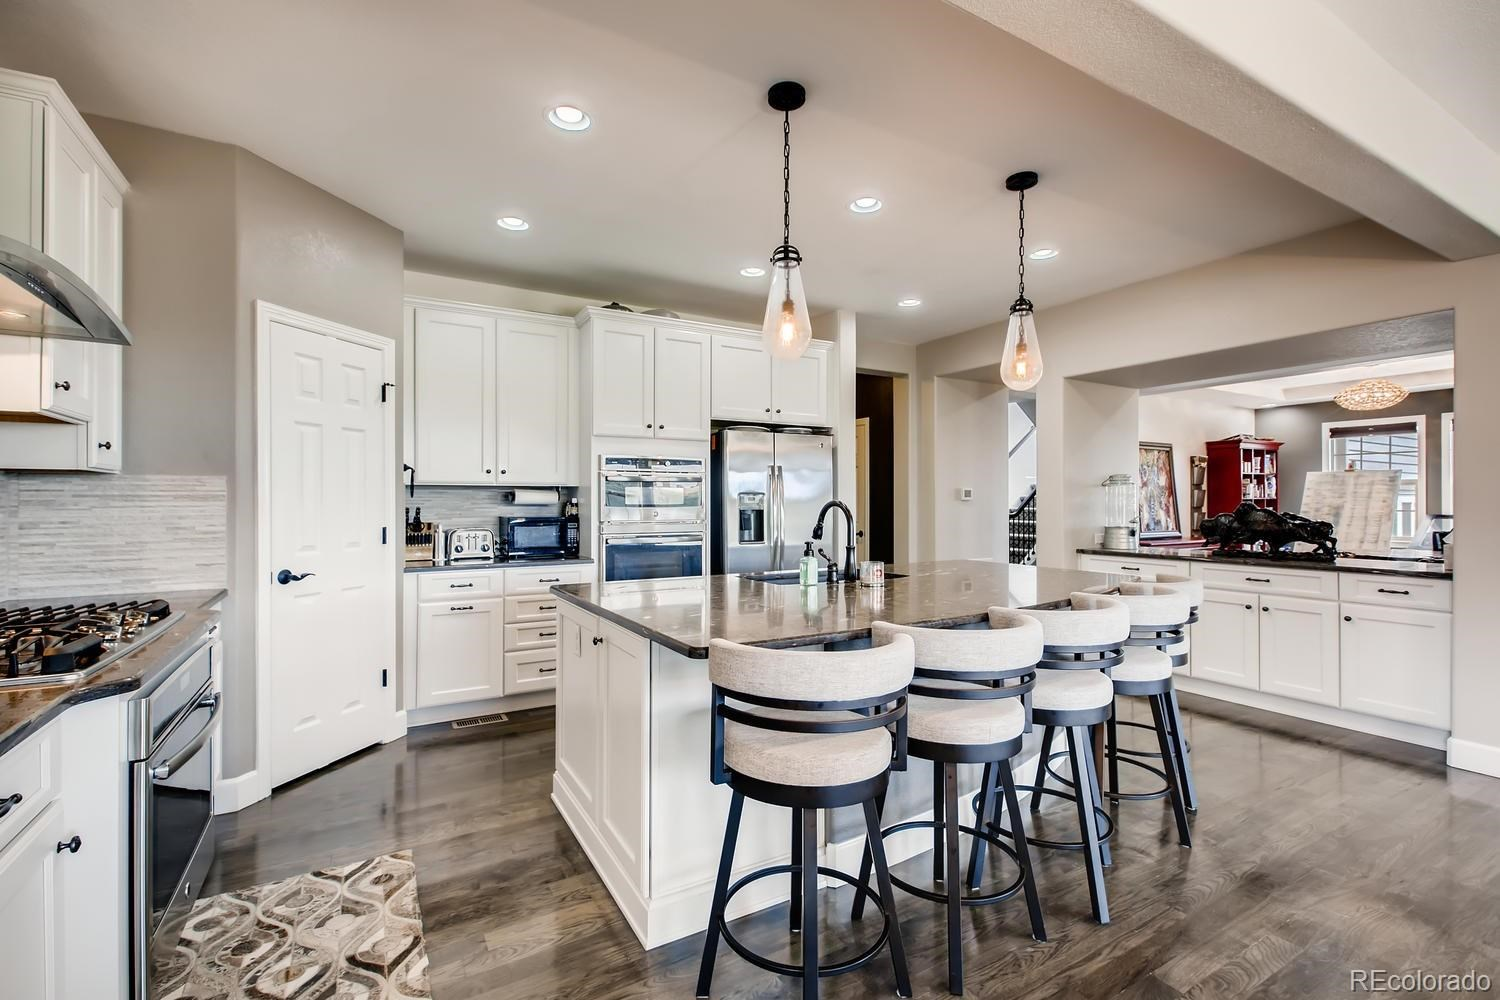 MLS# 5689224 - 8 - 10754 Greycliffe Drive, Highlands Ranch, CO 80126